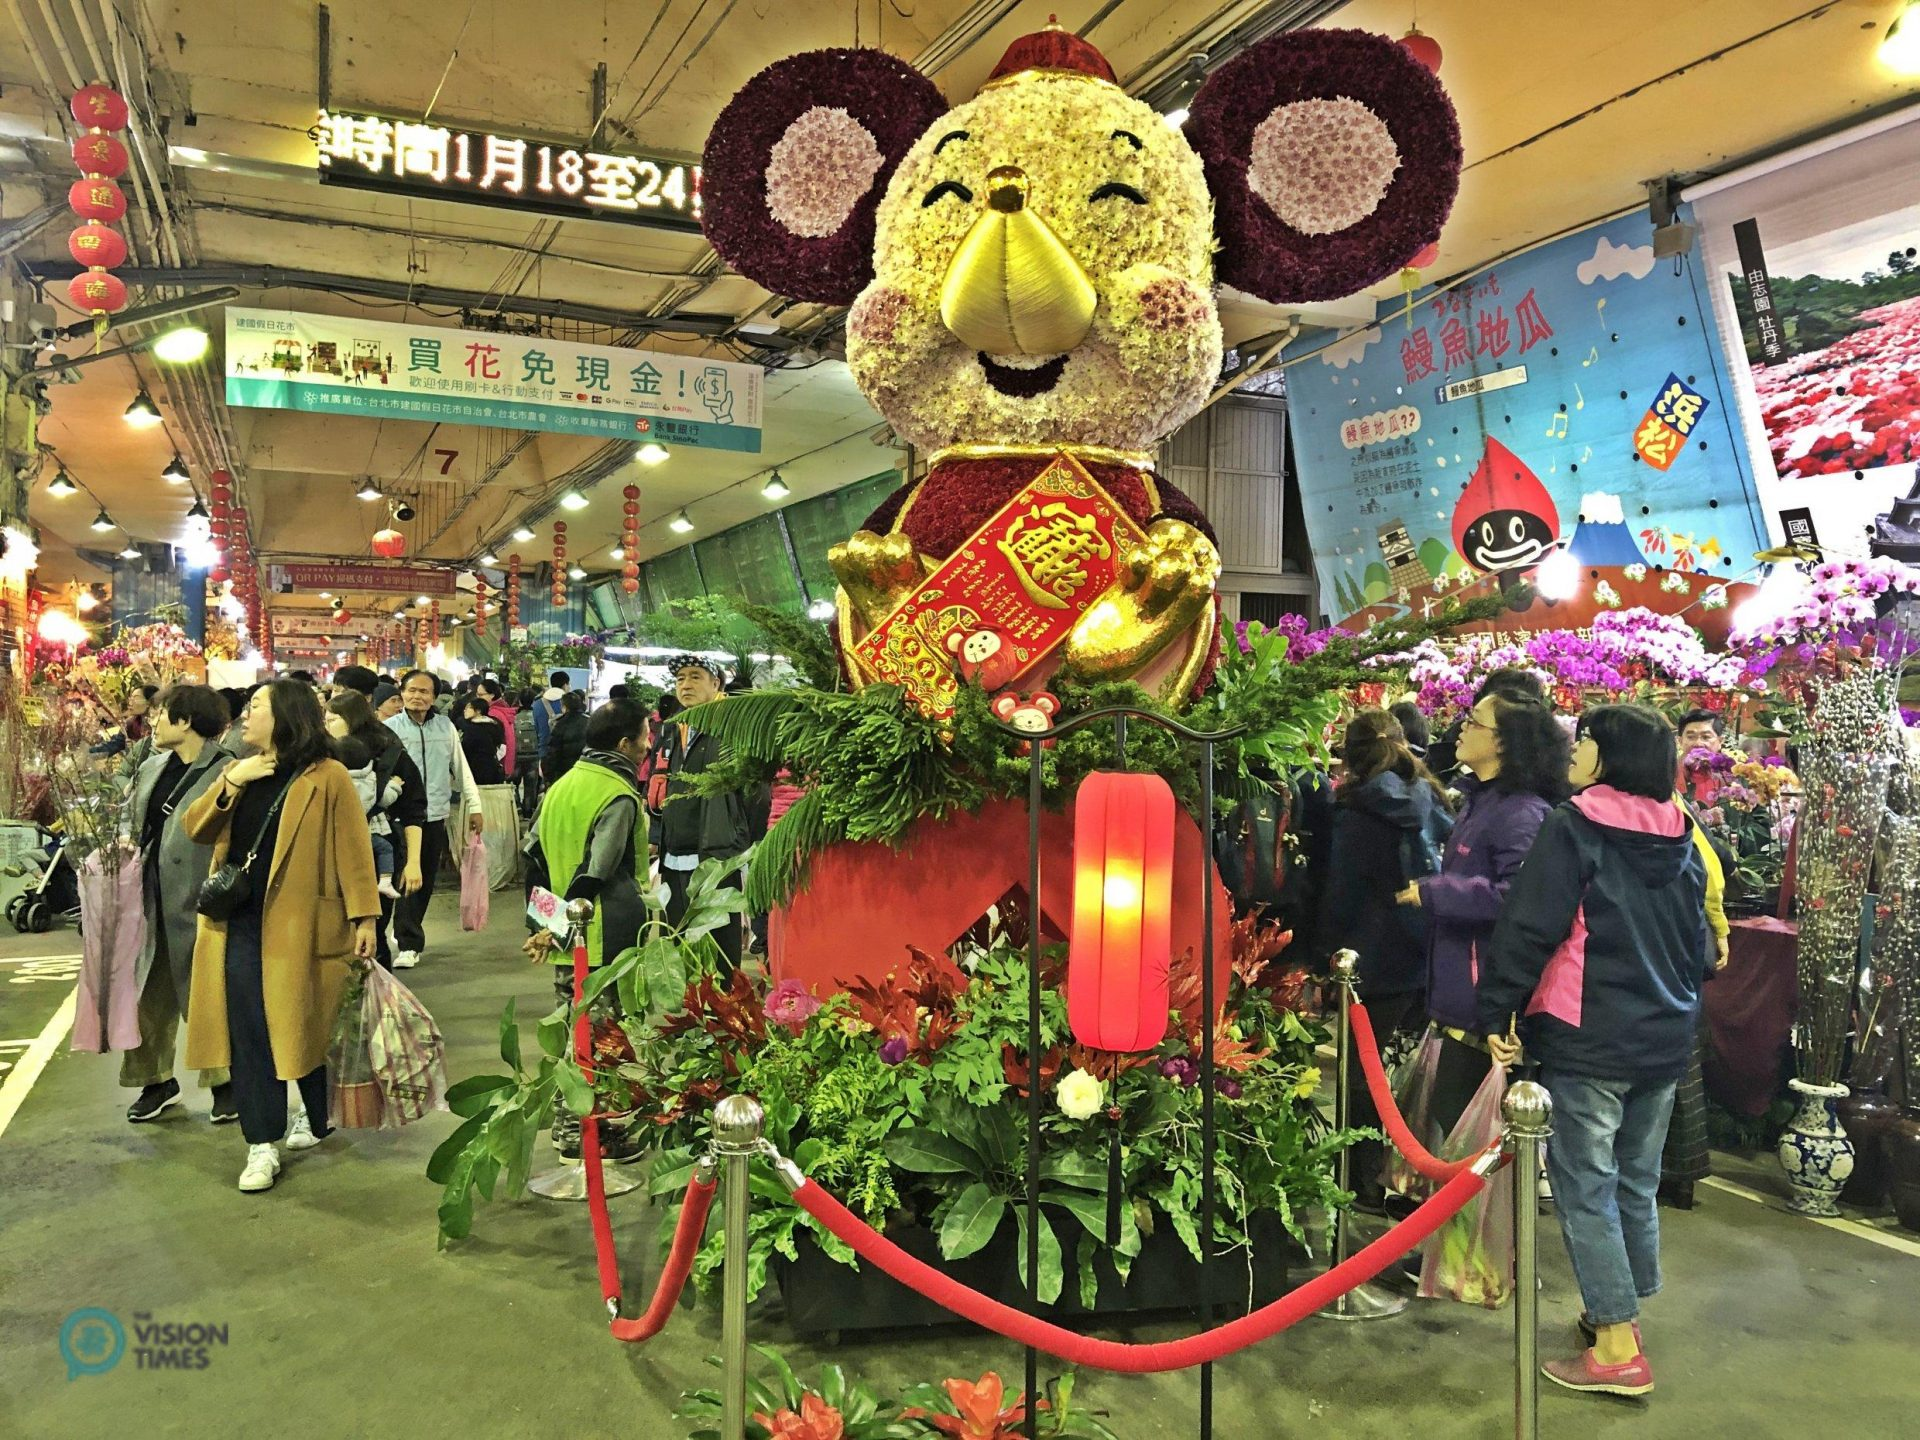 The Mscot Rat made of flowers at Taipei Jianguo Holiday Flower Market. (Image: Billy Shyu / Vision Times)